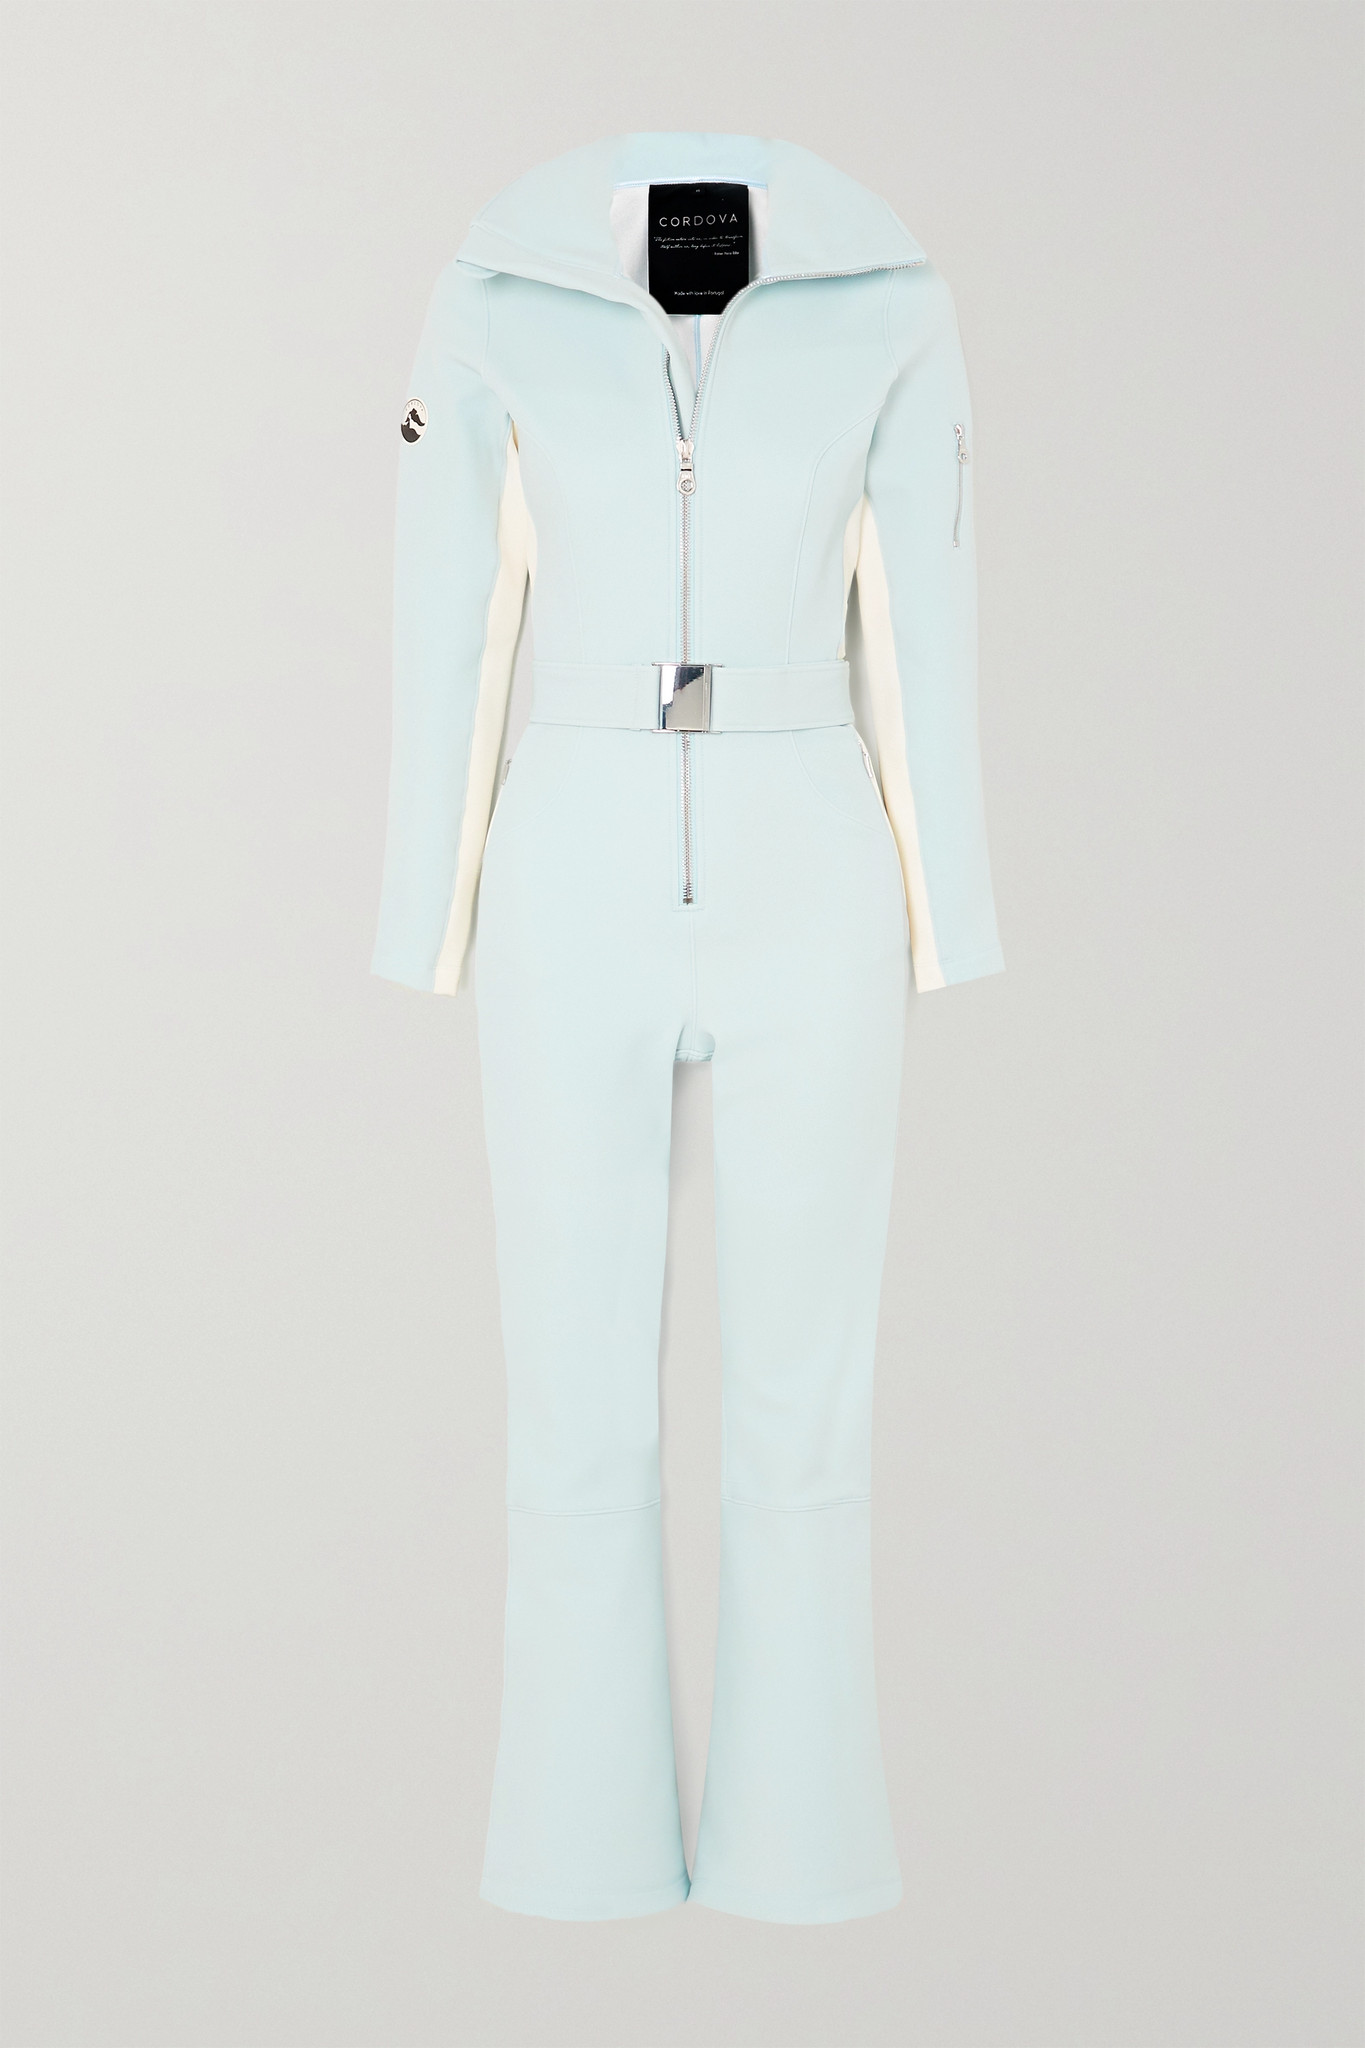 CORDOVA - Signature Over The Boot Belted Striped Ski Suit - Blue - x small